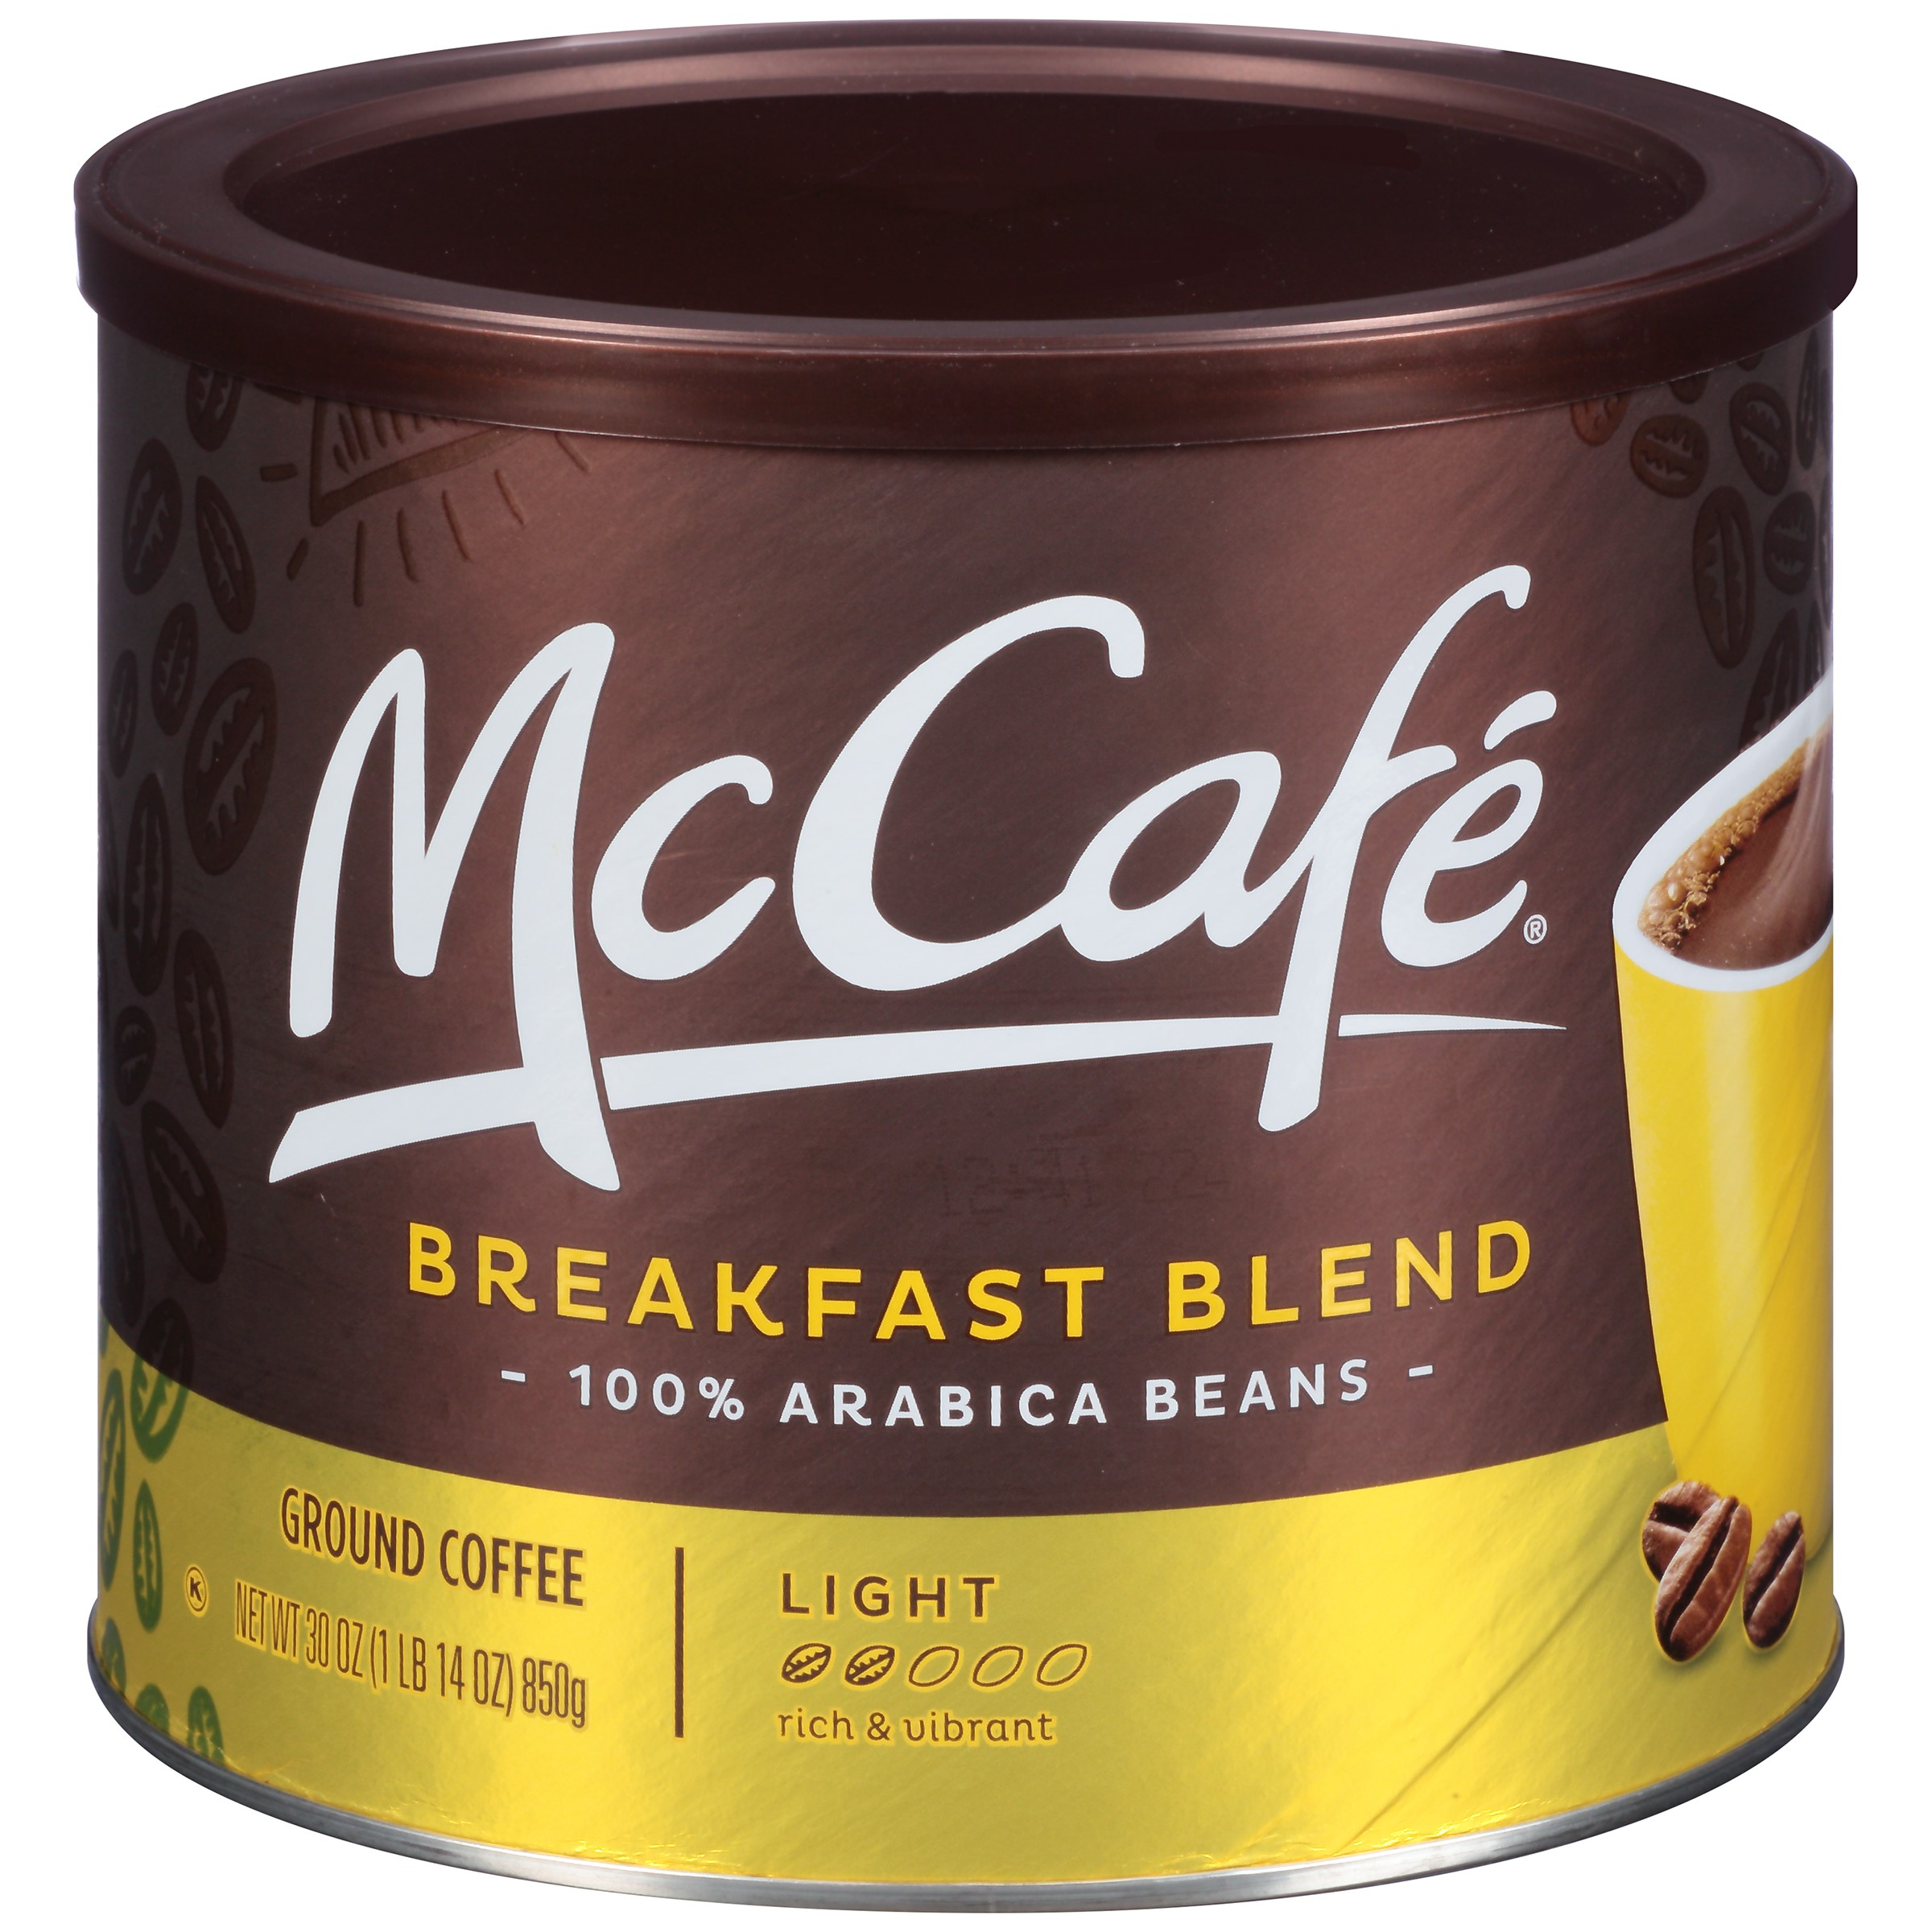 McCafe Breakfast Blend Ground Coffee, 30 oz (850 g) Canister